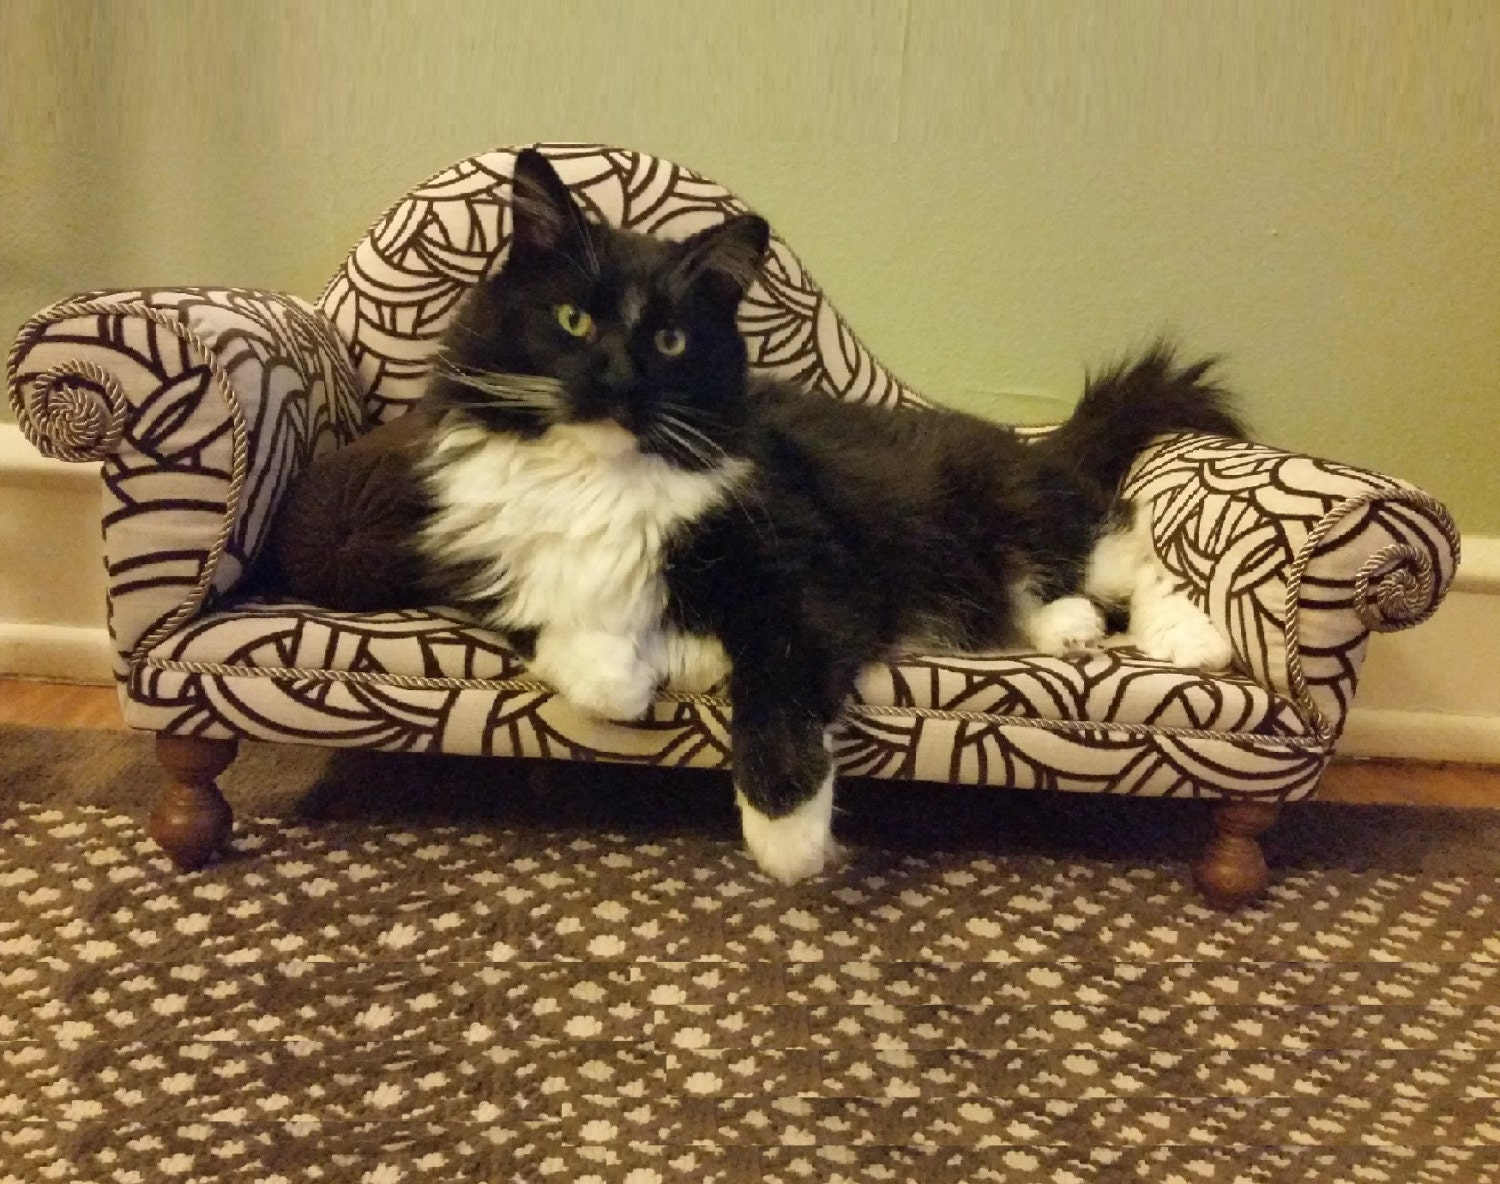 14 Pet Beds That Are Better Than What Fido Is Currently Sleeping On picture